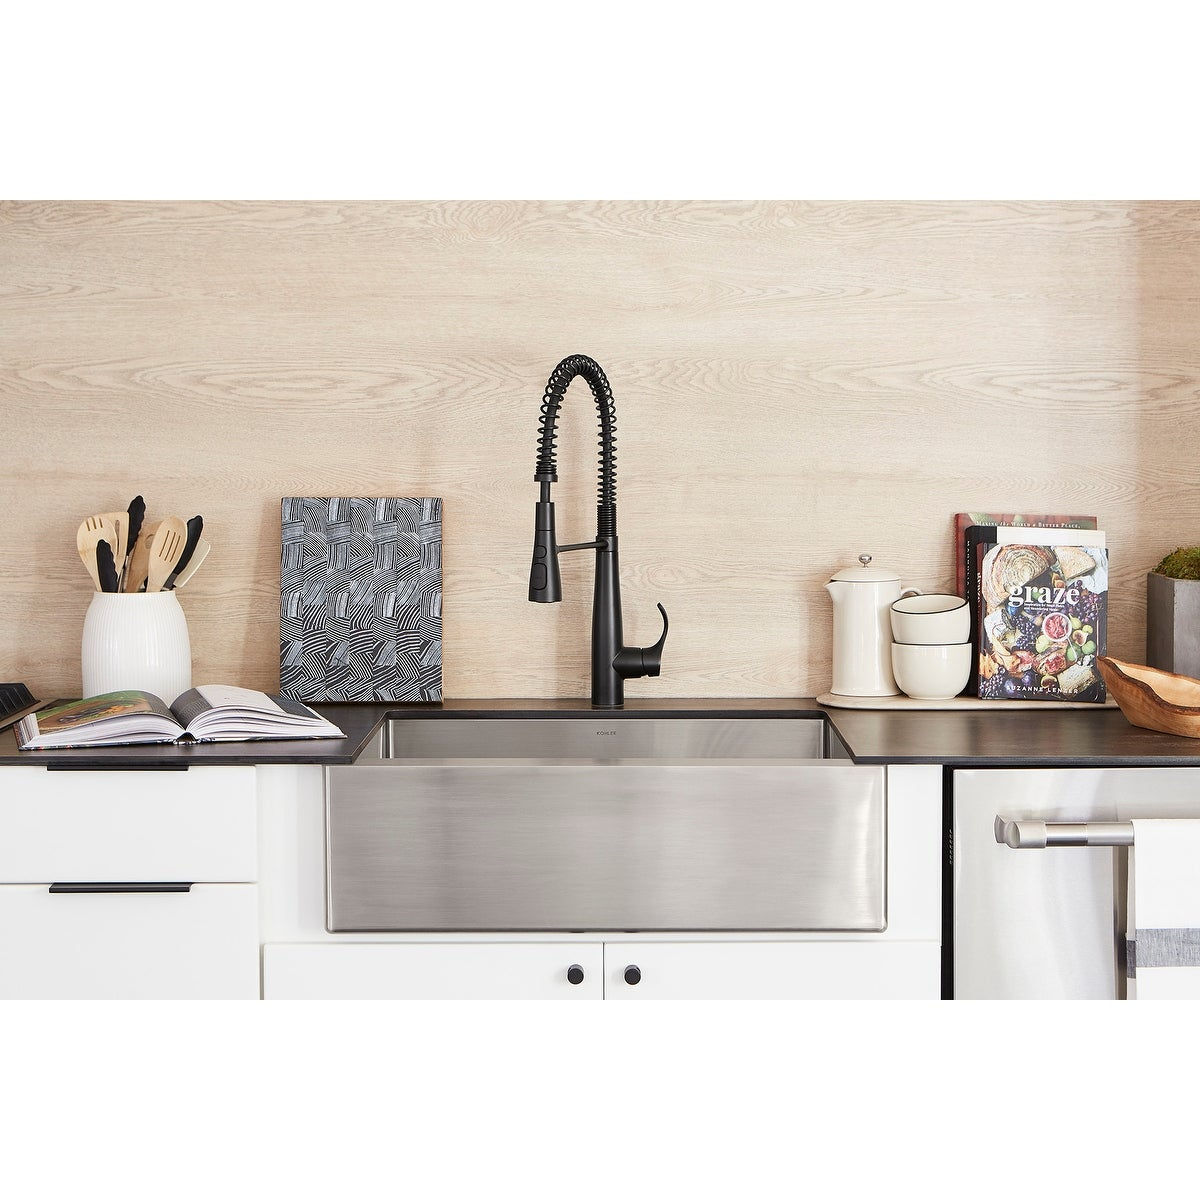 Kohler K-22033 Simplice Semi-professional Kitchen Sink Faucet with  3-function Spray Head